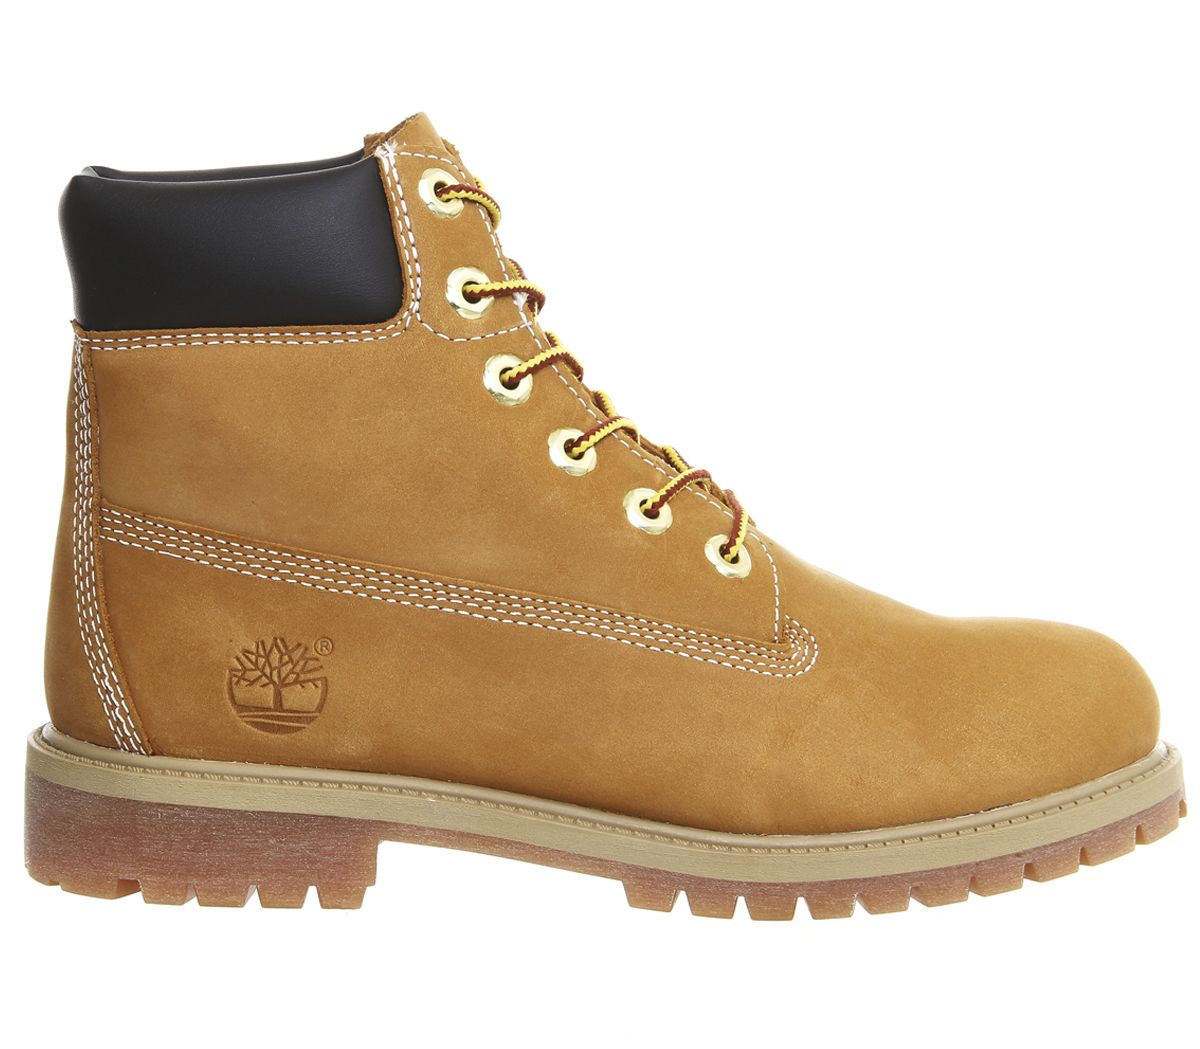 buy good lace up in classic styles Details about Kids Timberland Juniors 6 Inch Premium Waterproof Boots Wheat  Nubuck Kids